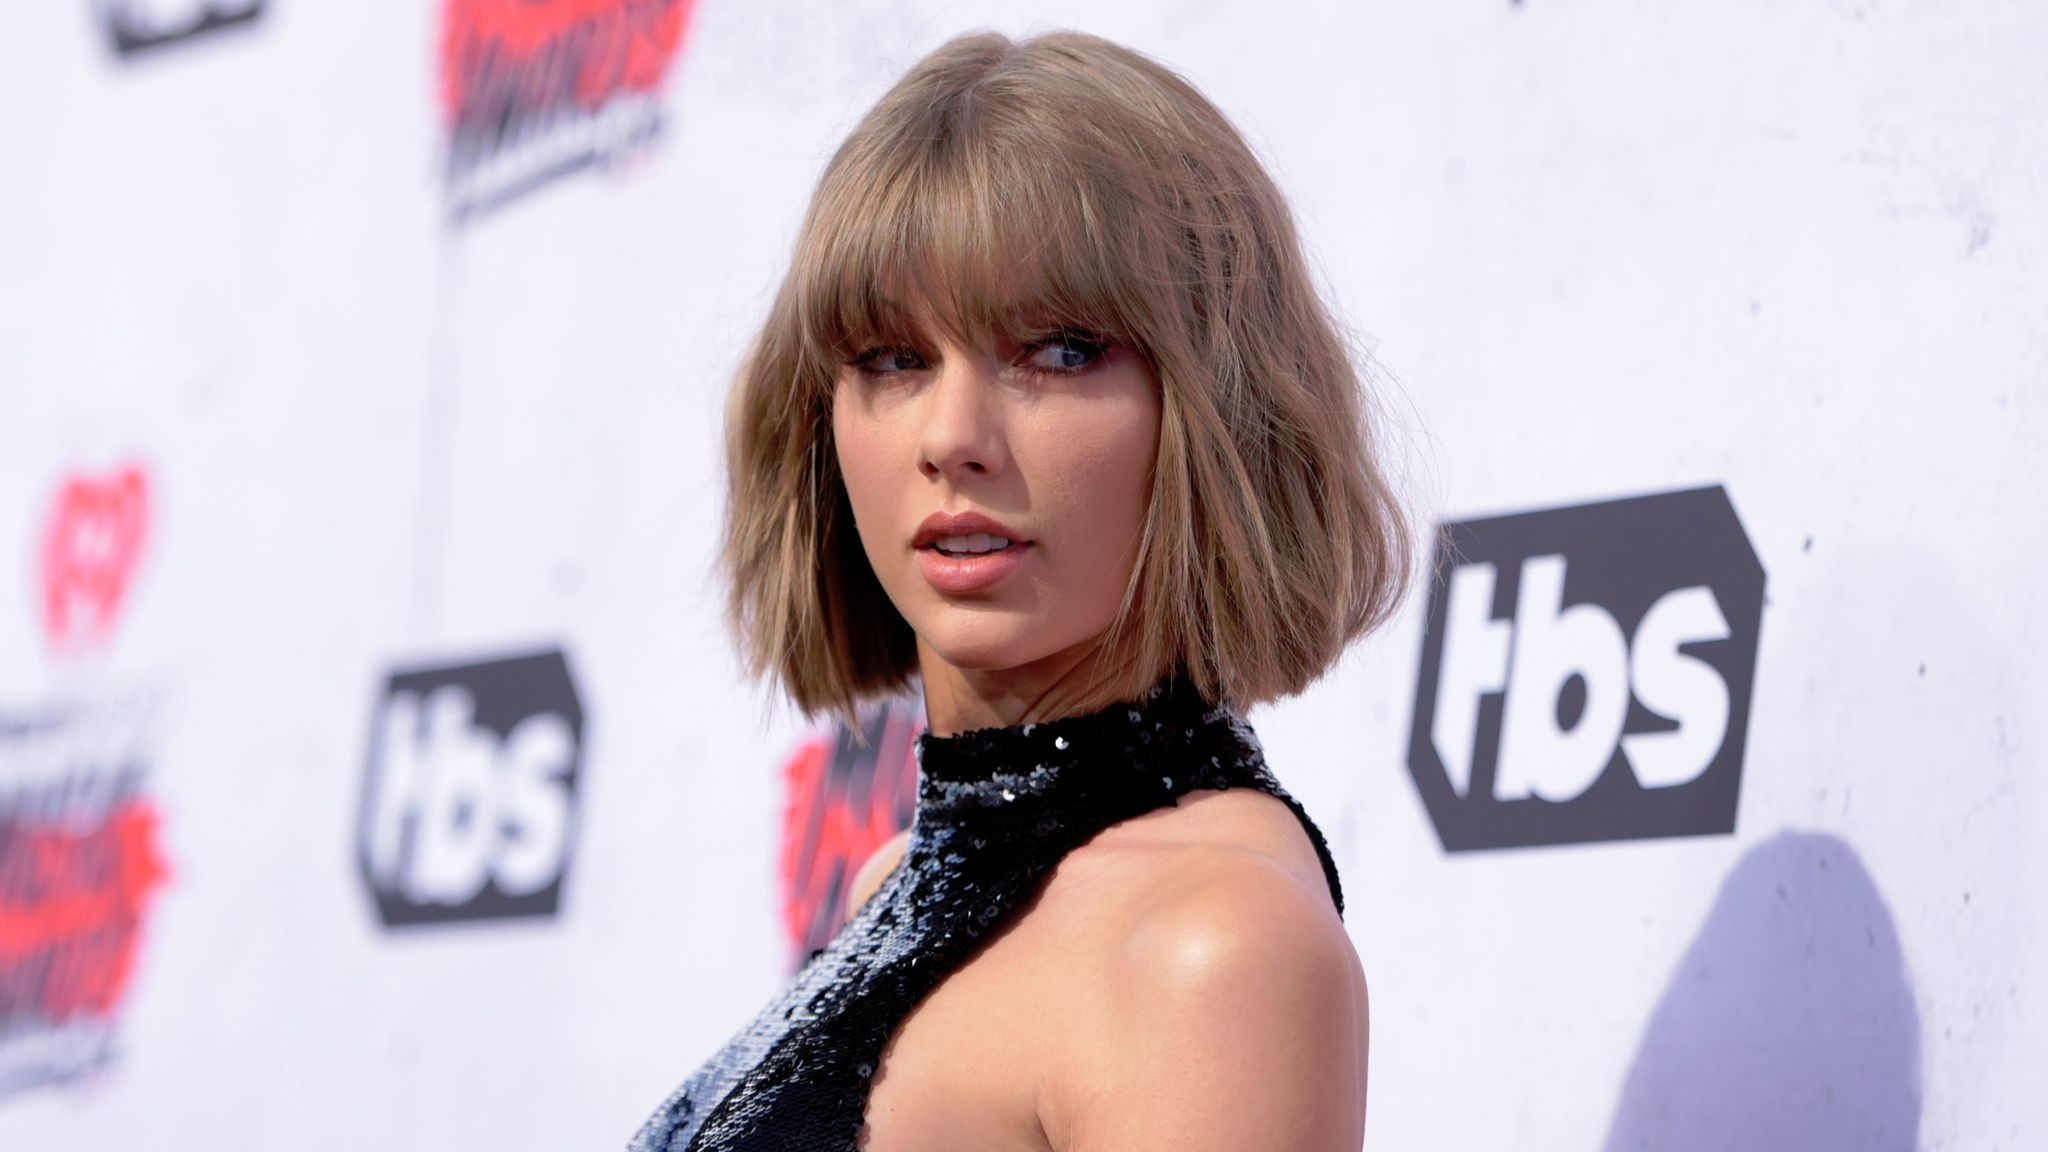 Taylor Swift in court over groping case